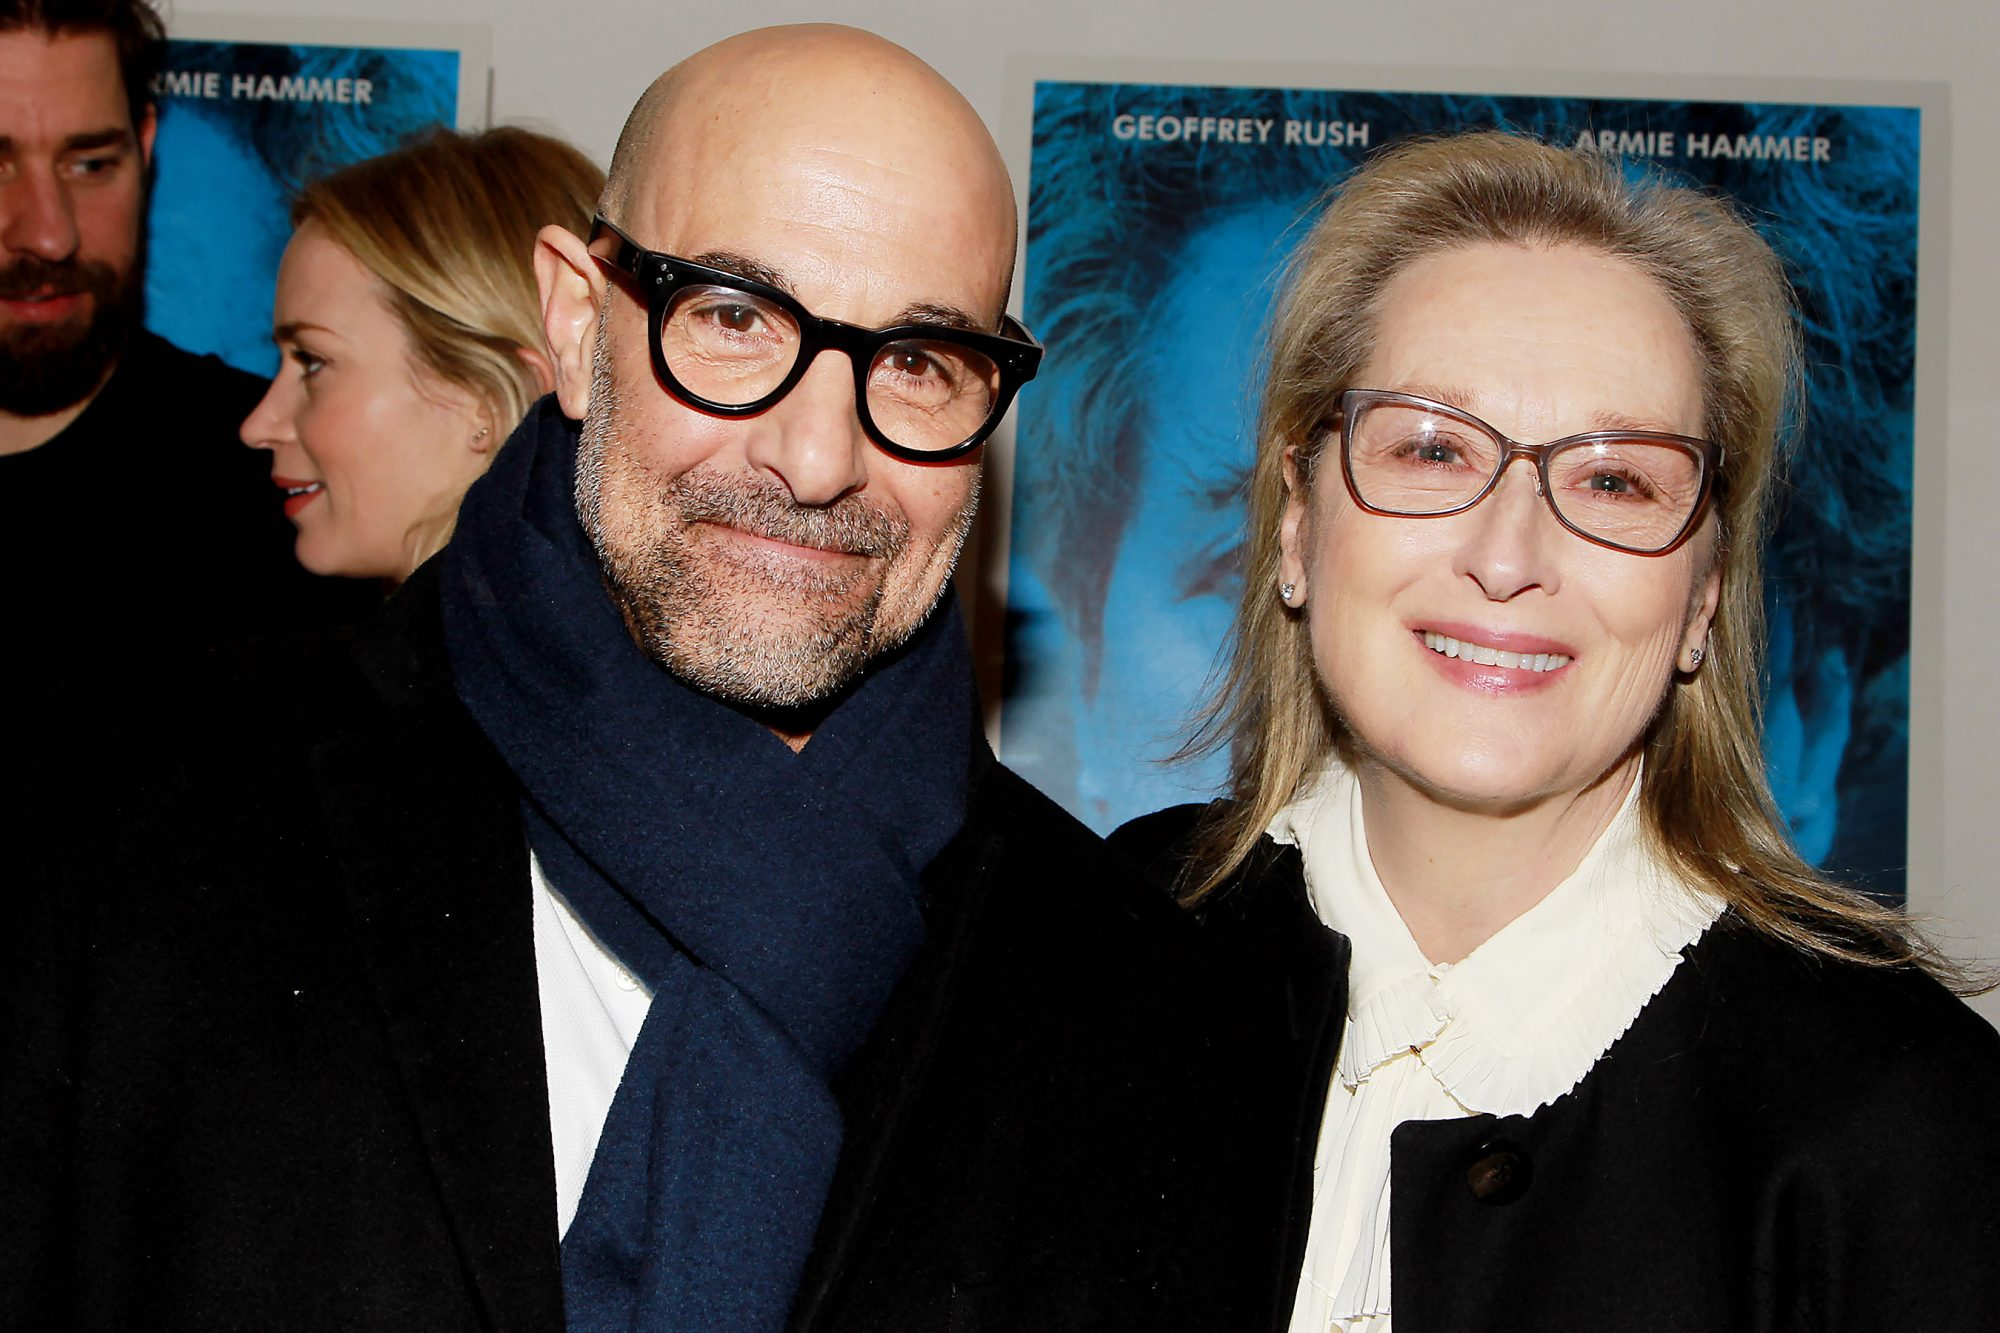 Although The Devil Wears Prada costars didn't pose all together at the March 2018 premiere of Tucci's film, Final Portrait, the director was spotted smiling alongside Streep- with whom he also starred in 2009'sJulie & Julia-and cozying up with Blunt.